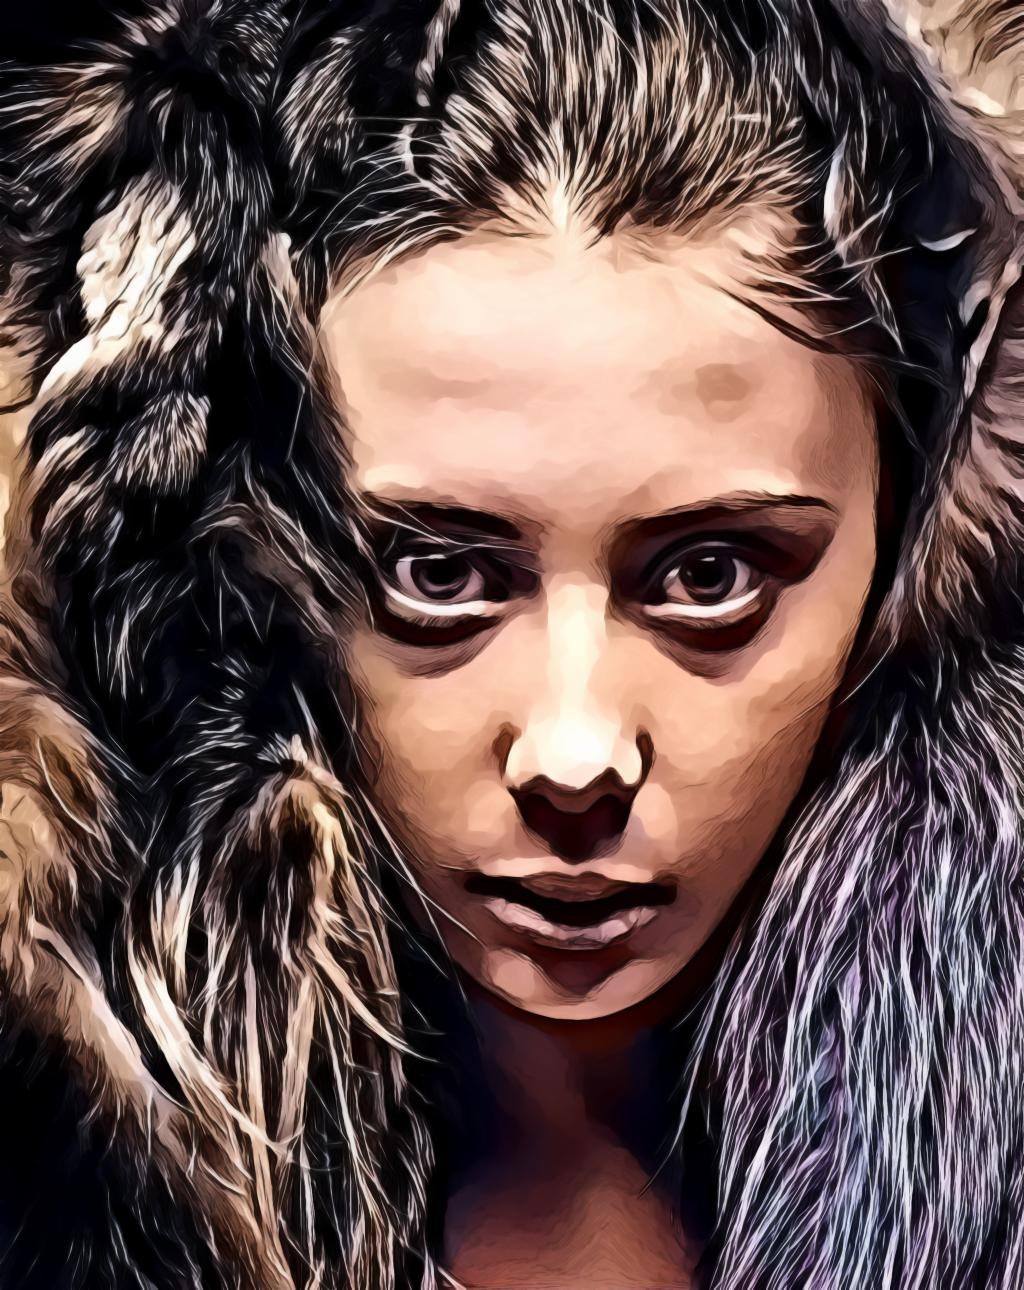 Woman's face surrounded with fur